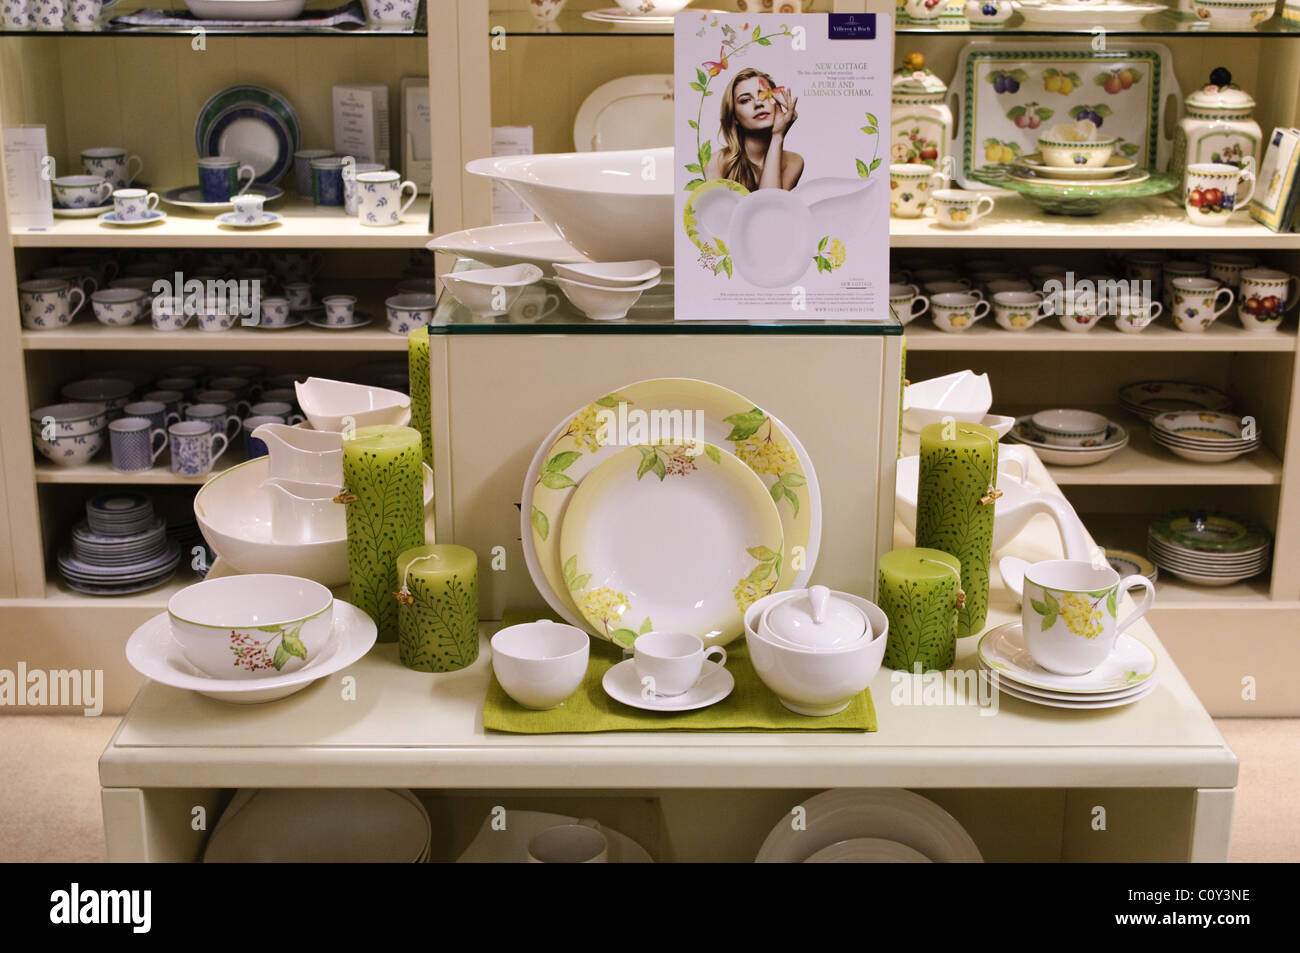 Villeroy boch tableware on display in a china shop stock photo 35016394 alamy - Villeroy boch fliesen outlet ...